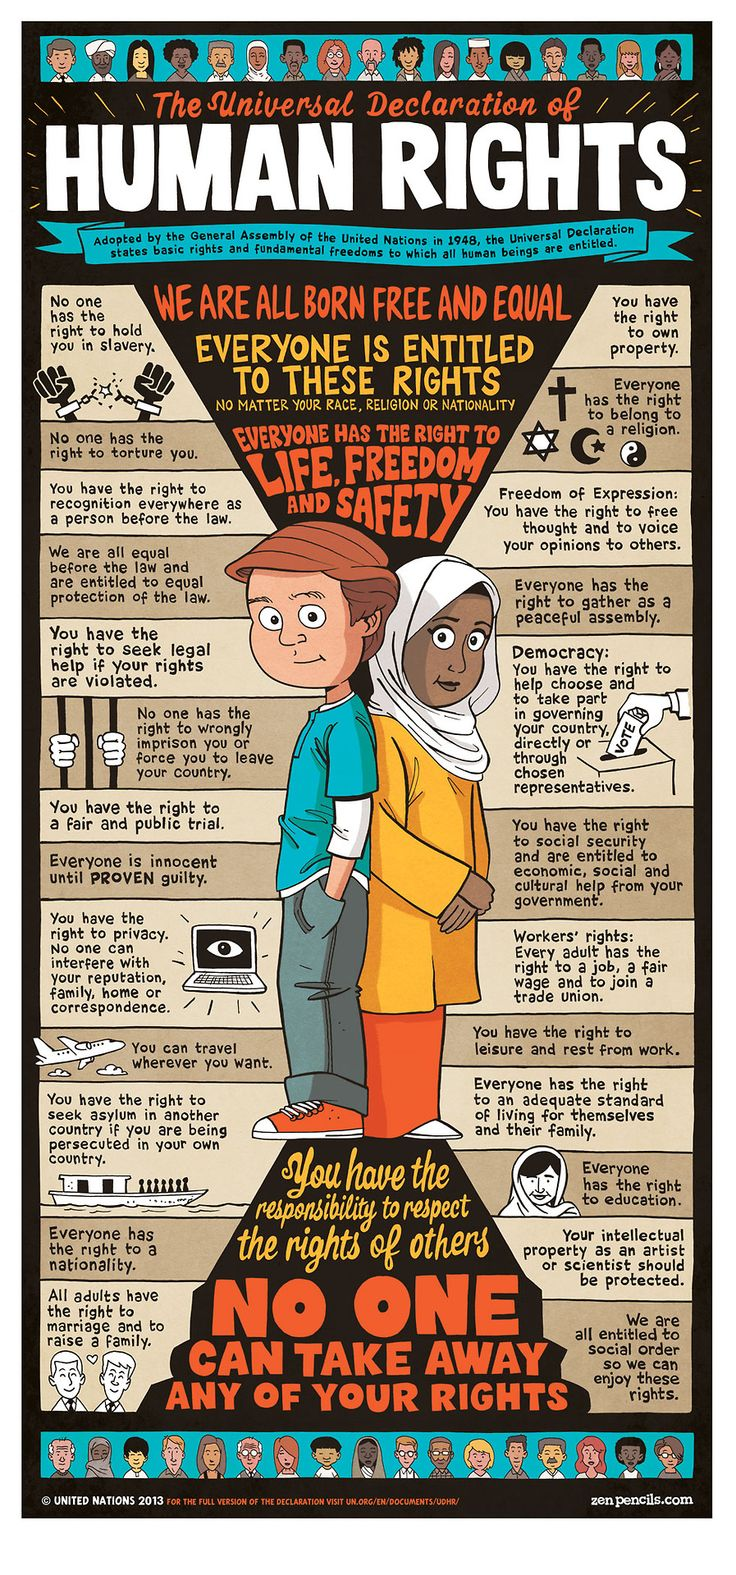 We love this version of The Universal Declaration of #HumanRights